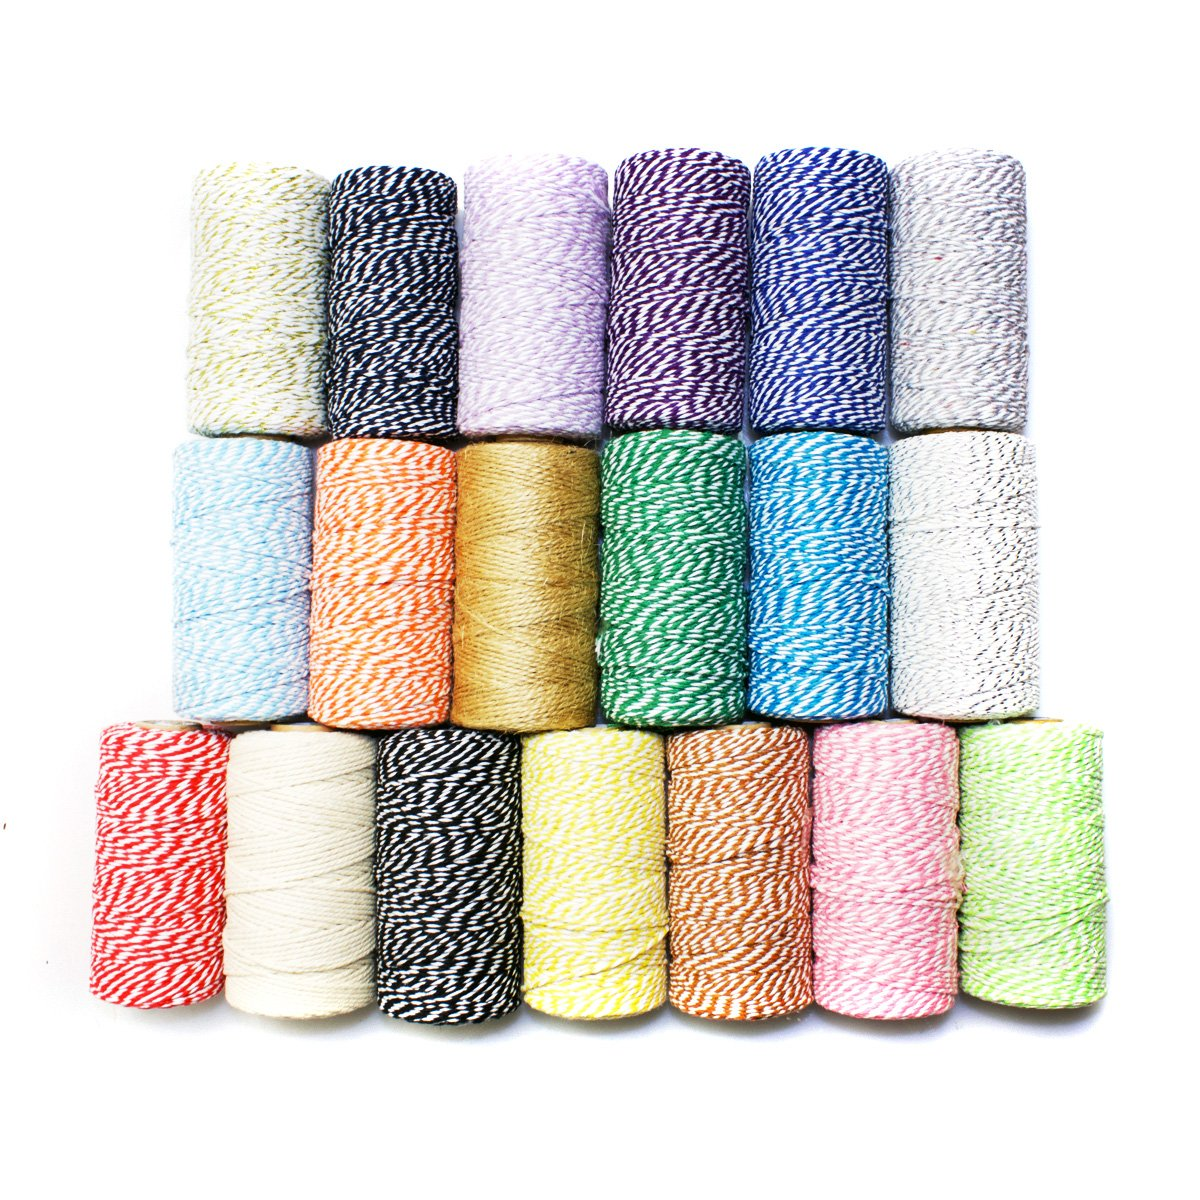 Mimi Pack Cotton Twine (All Colors)